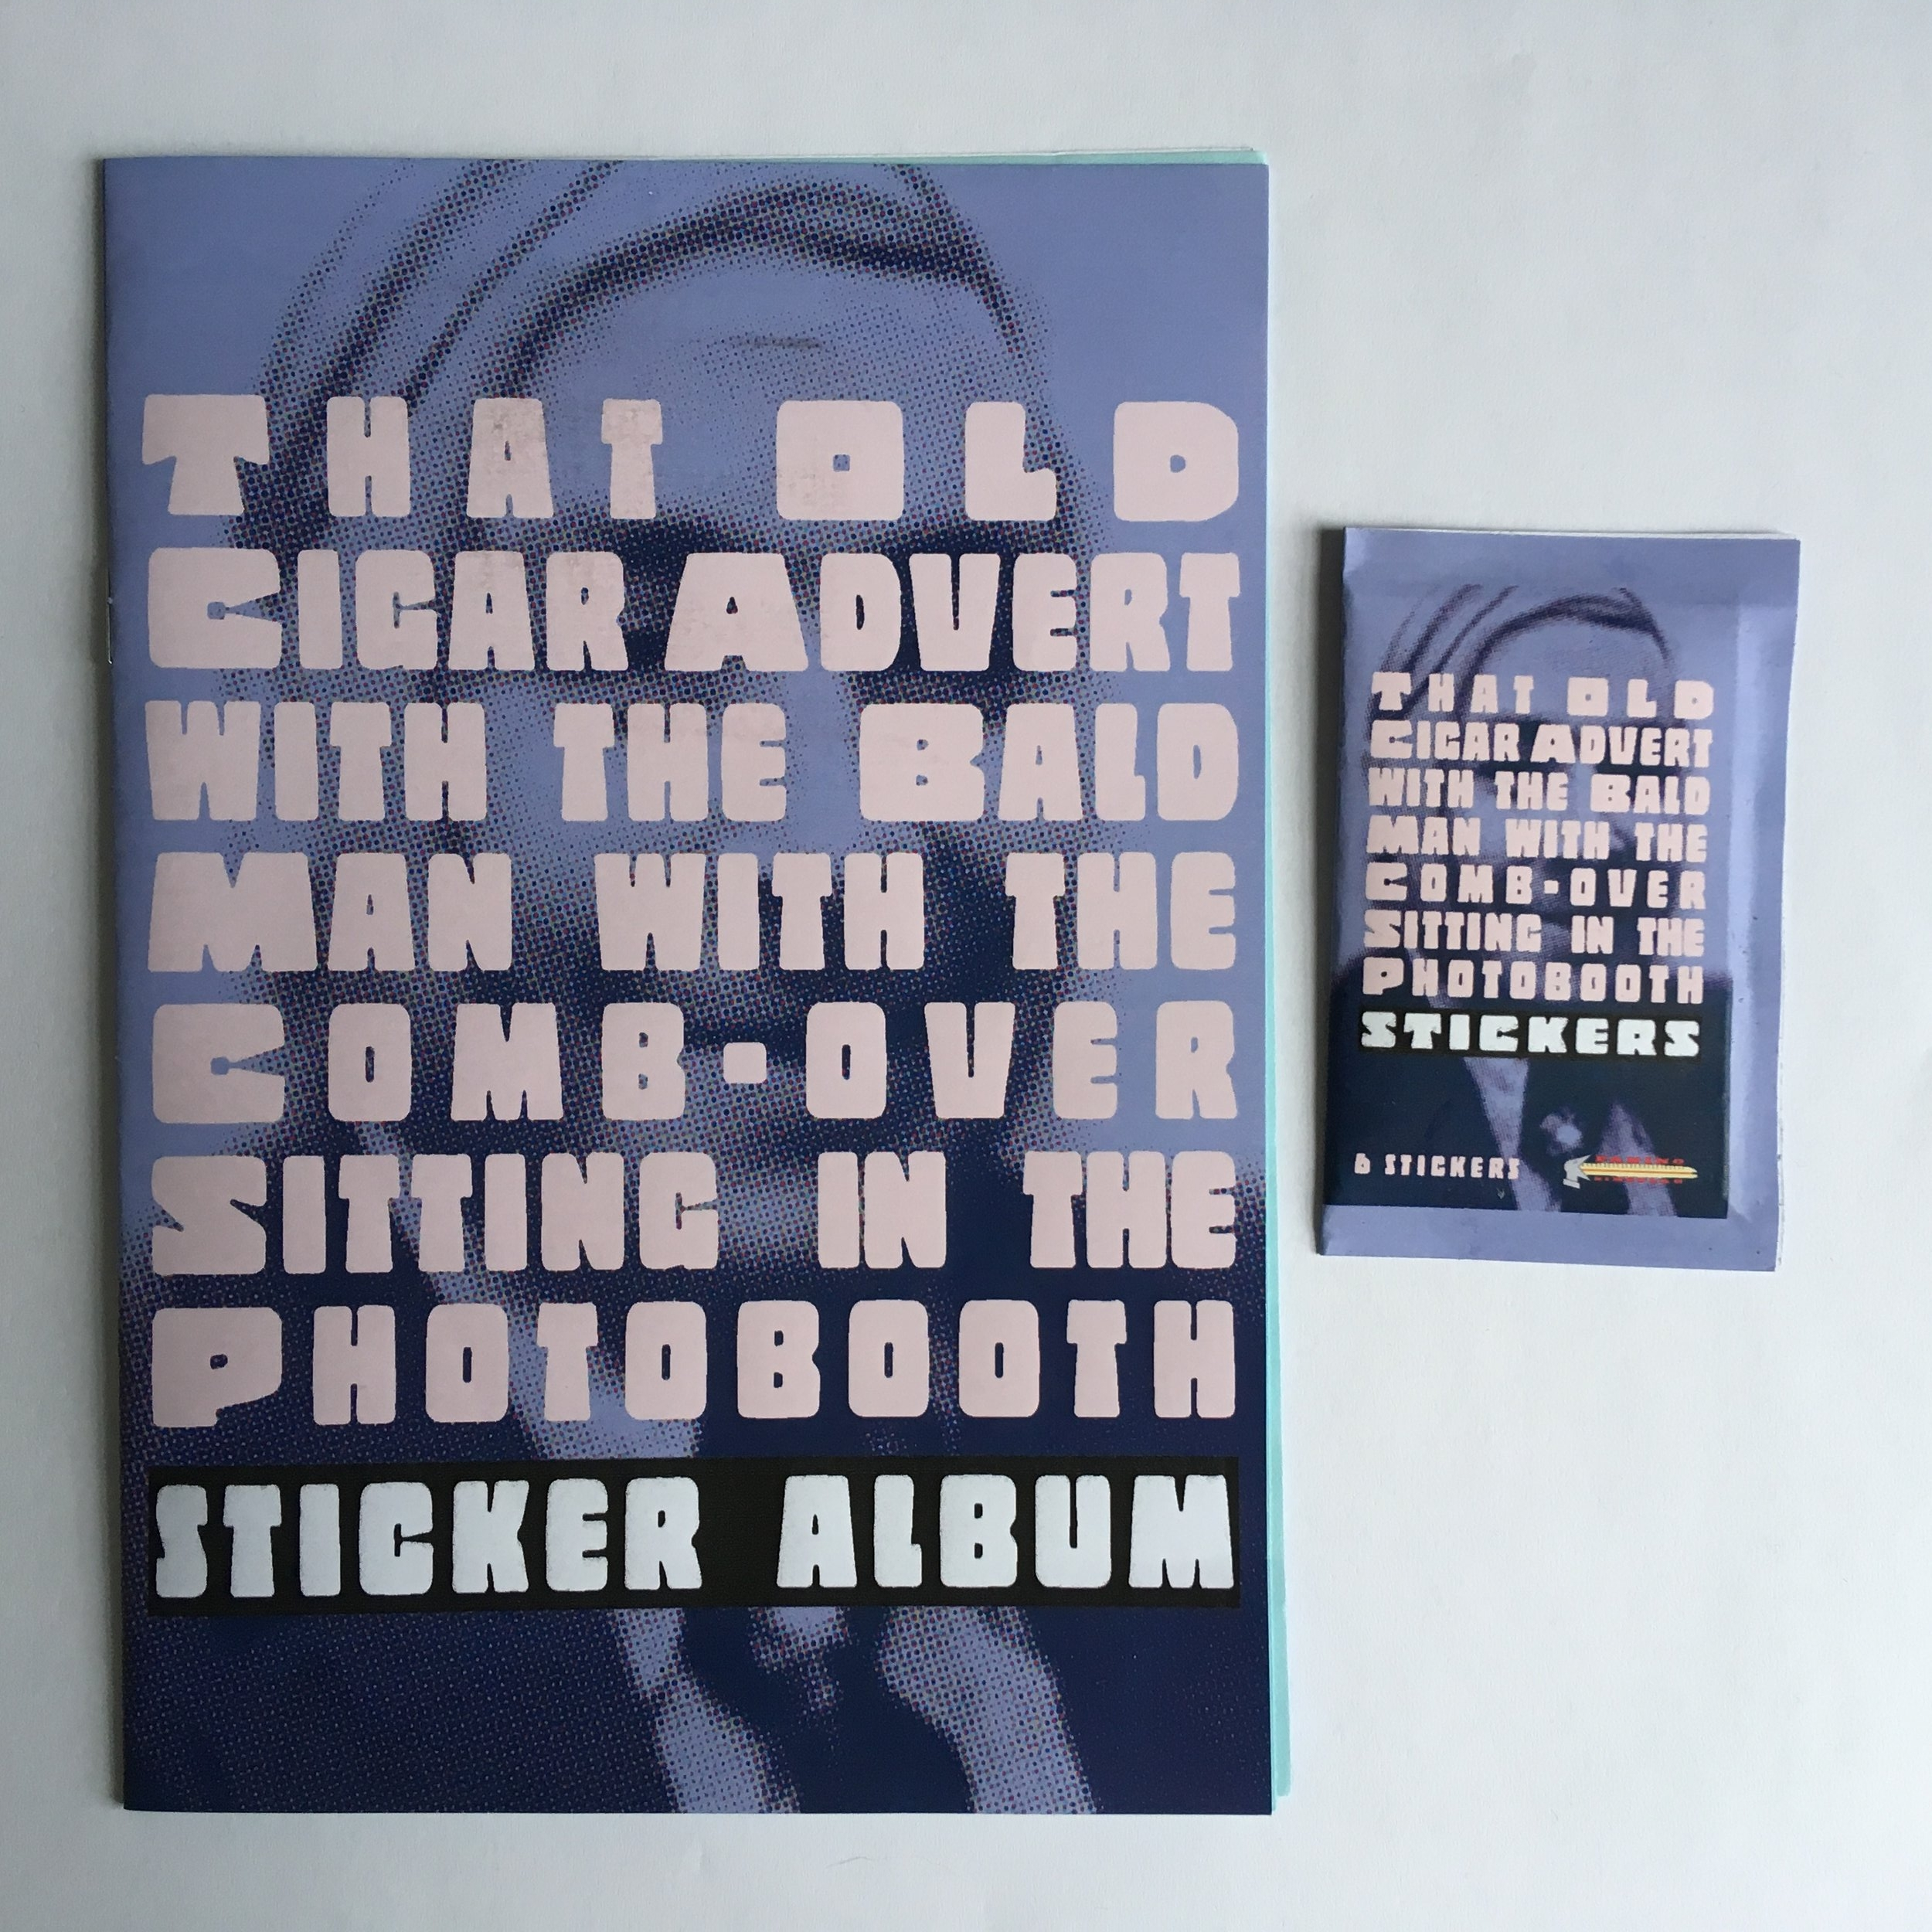 That Old Cigar Advert with the Bald Man with the Comb-Over Sitting in the Photobooth Sticker Album